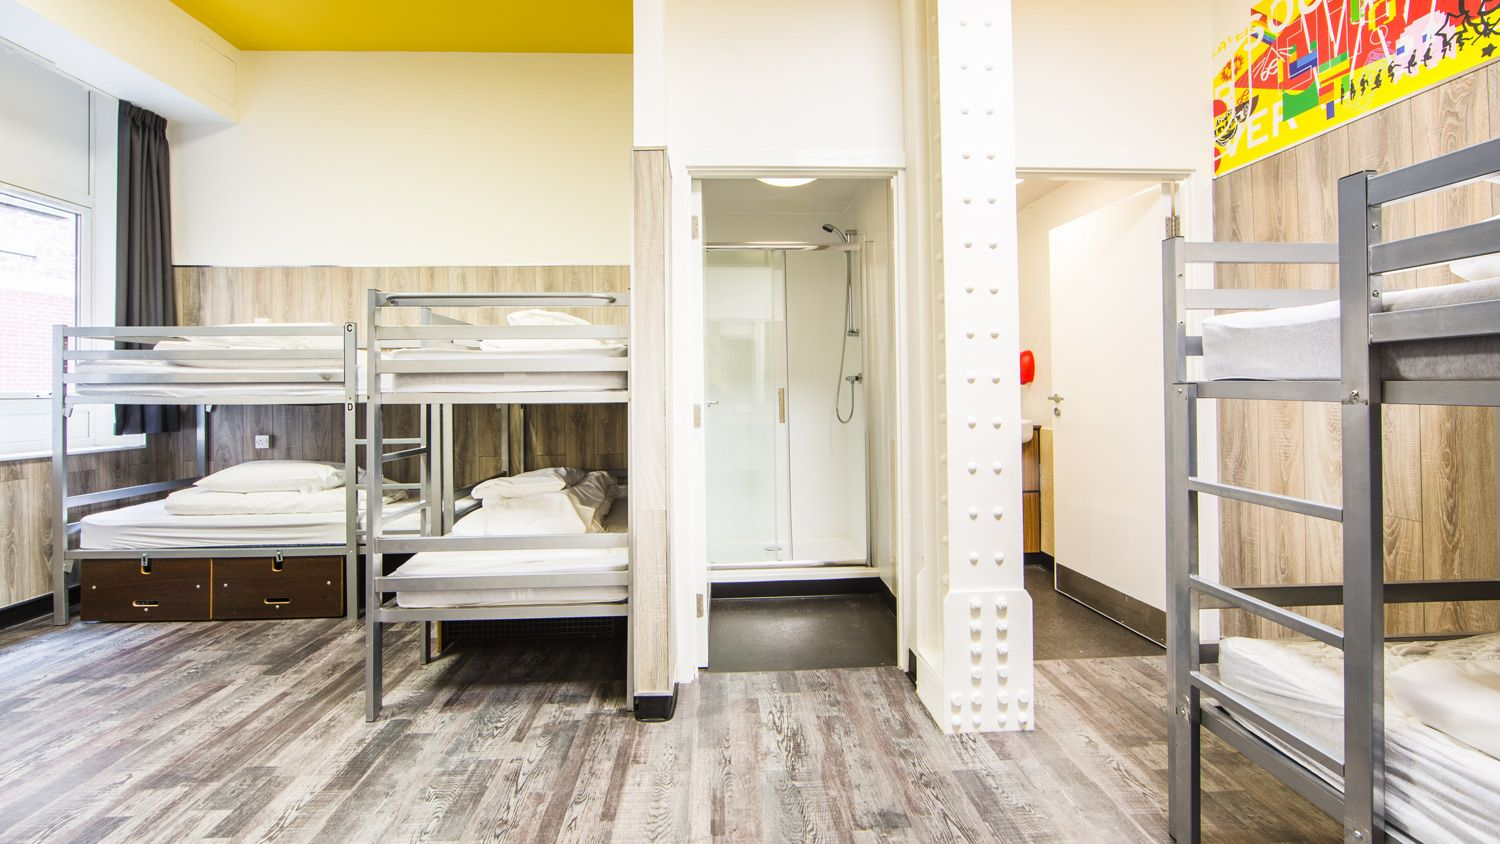 Shared Mixed Gender Dorm for 8 People at Euro Hostel Newcastle